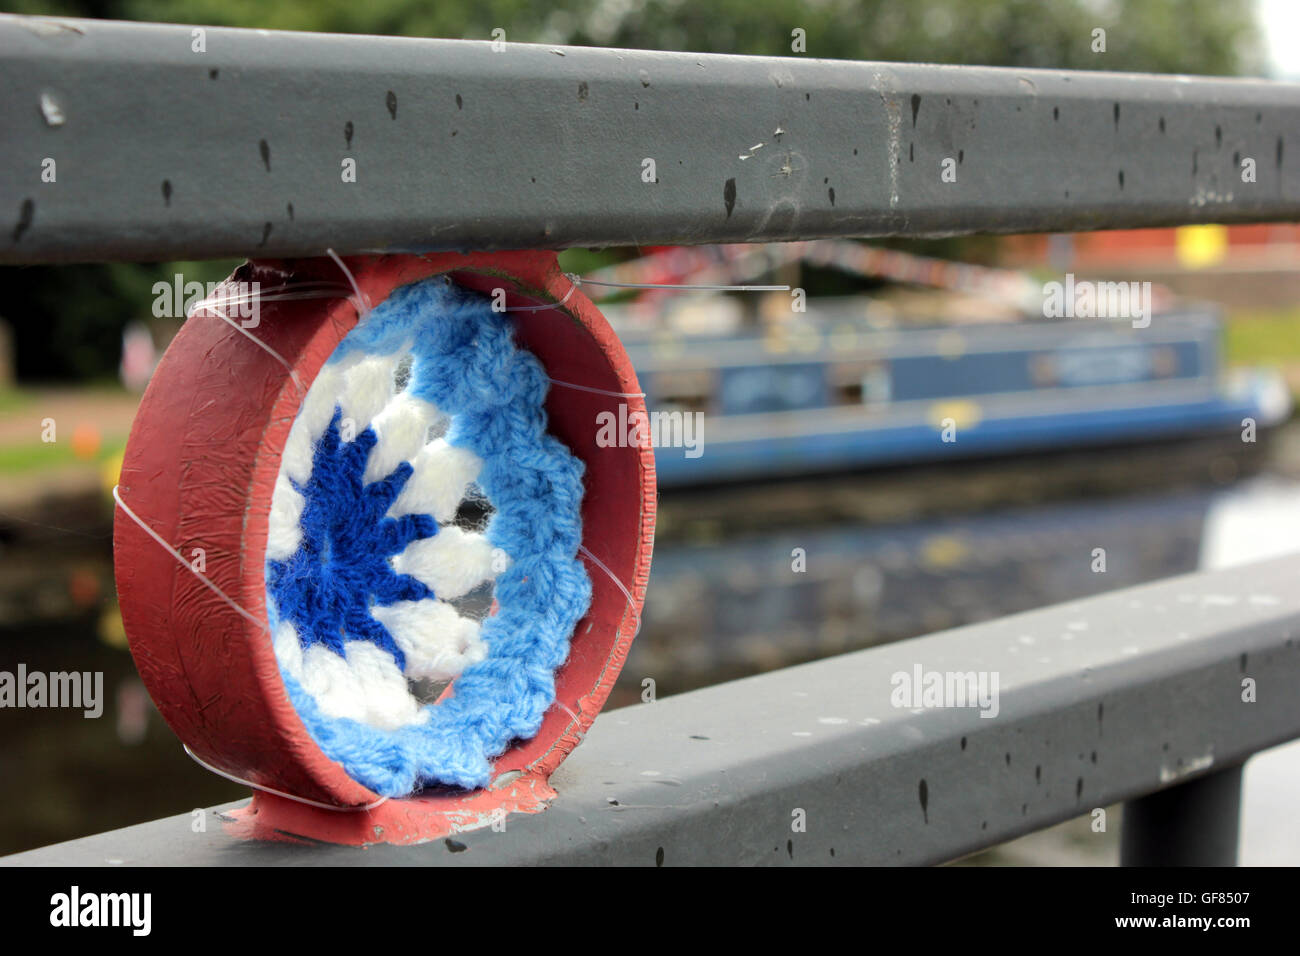 A Crochet canal wheel and bunting attached to a foot bridge over the Leeds and Liverpool canal in Blackburn Lancashire. - Stock Image